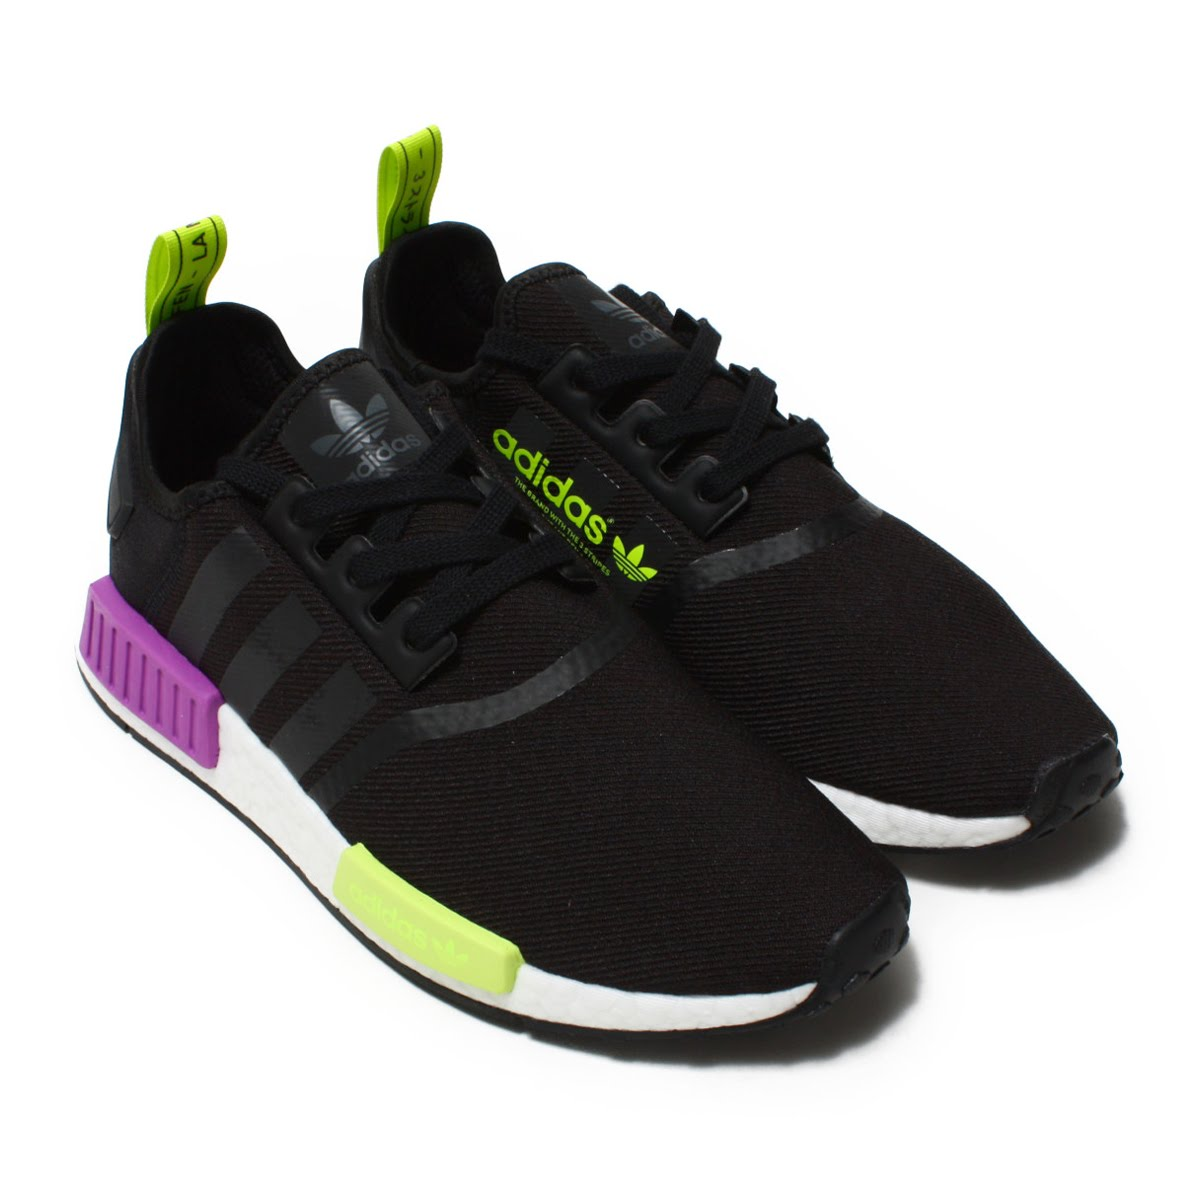 separation shoes 08632 77a1b atmos pink  adidas Originals NMD R1 (Adidas originals N M D R1) core ...